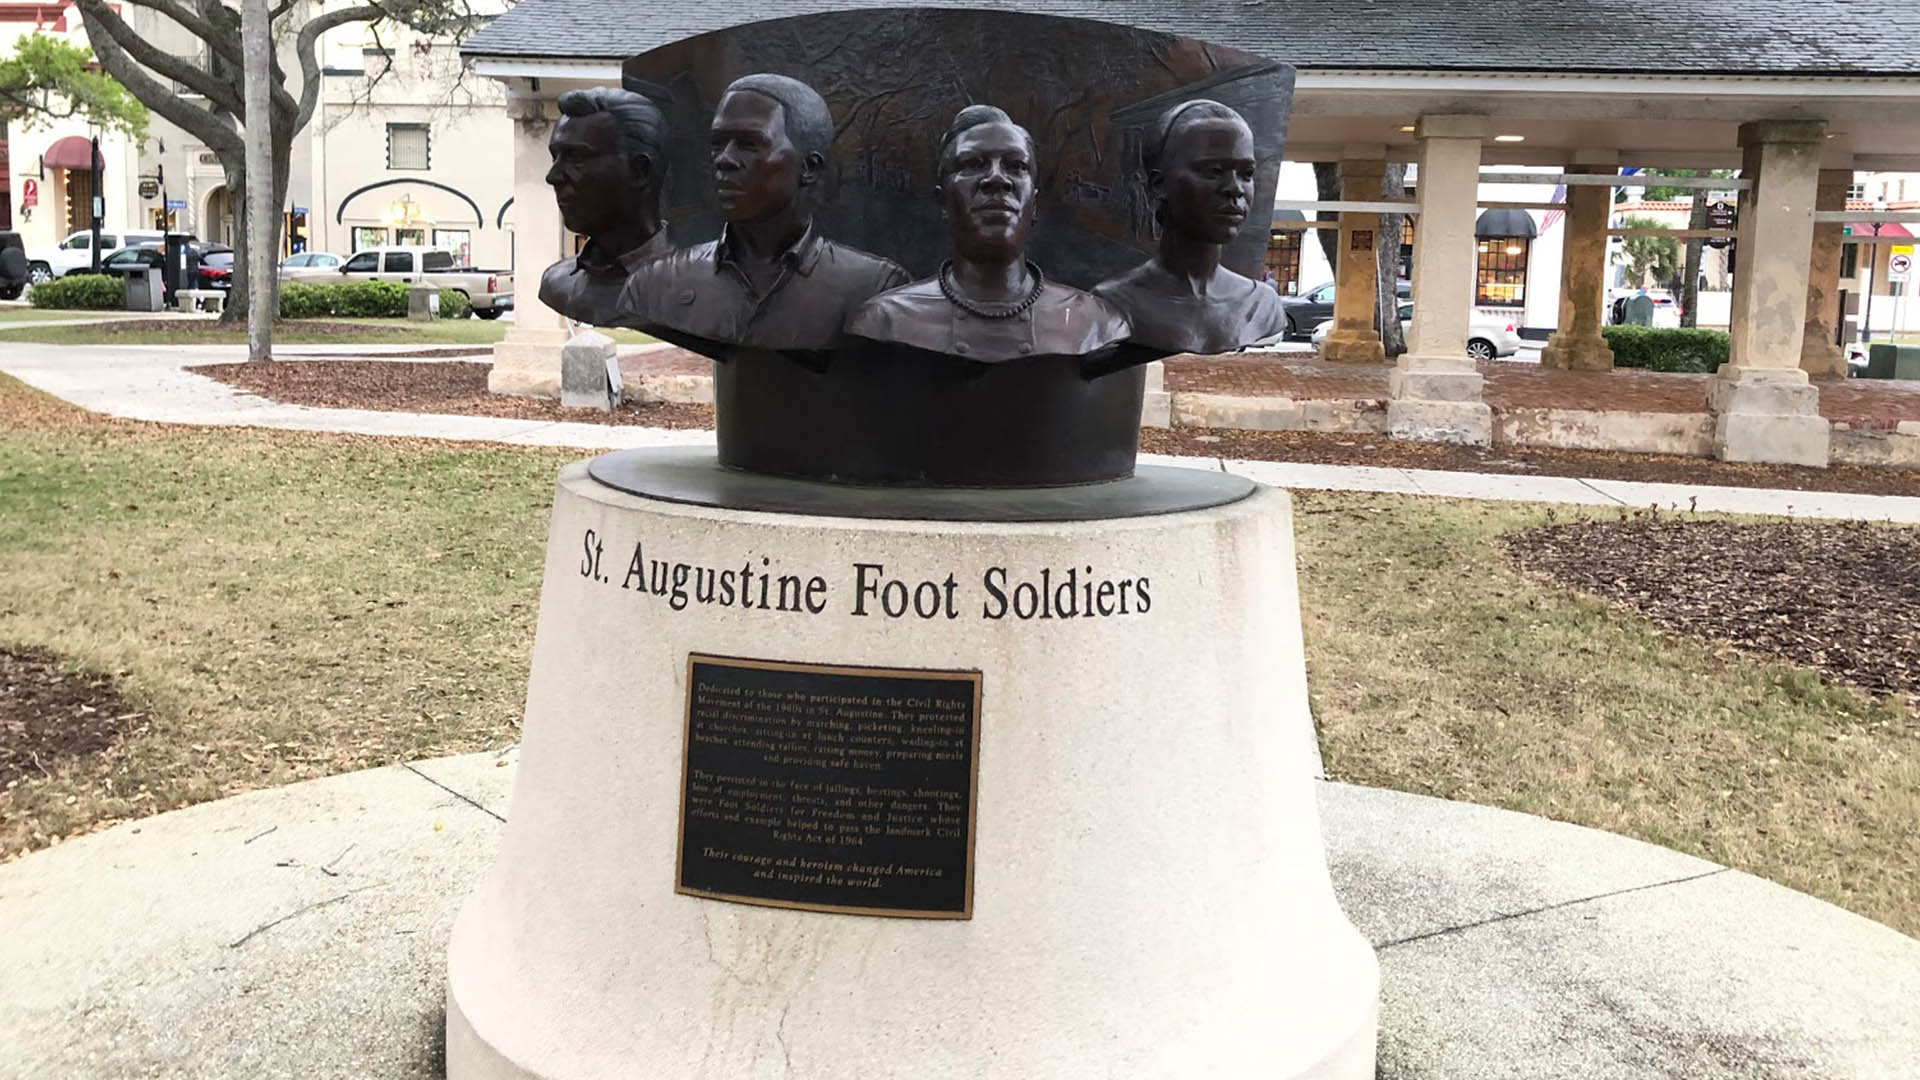 A monument to African American foot soldiers in St. Augustine, FL.